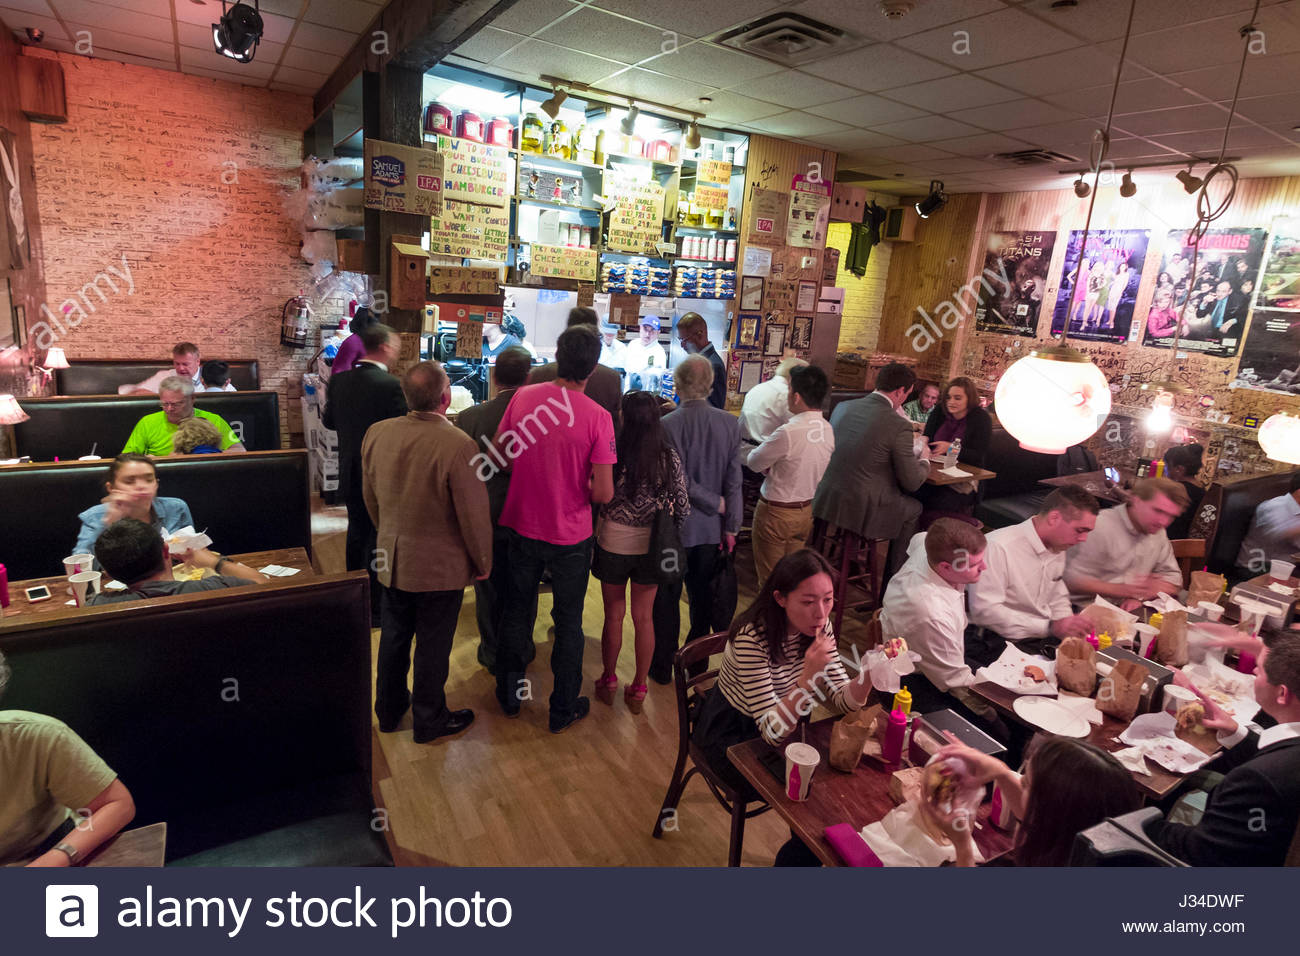 People standing in line to order lunch at the burger joint, W 56th St., New York, NY, USA - Stock Image